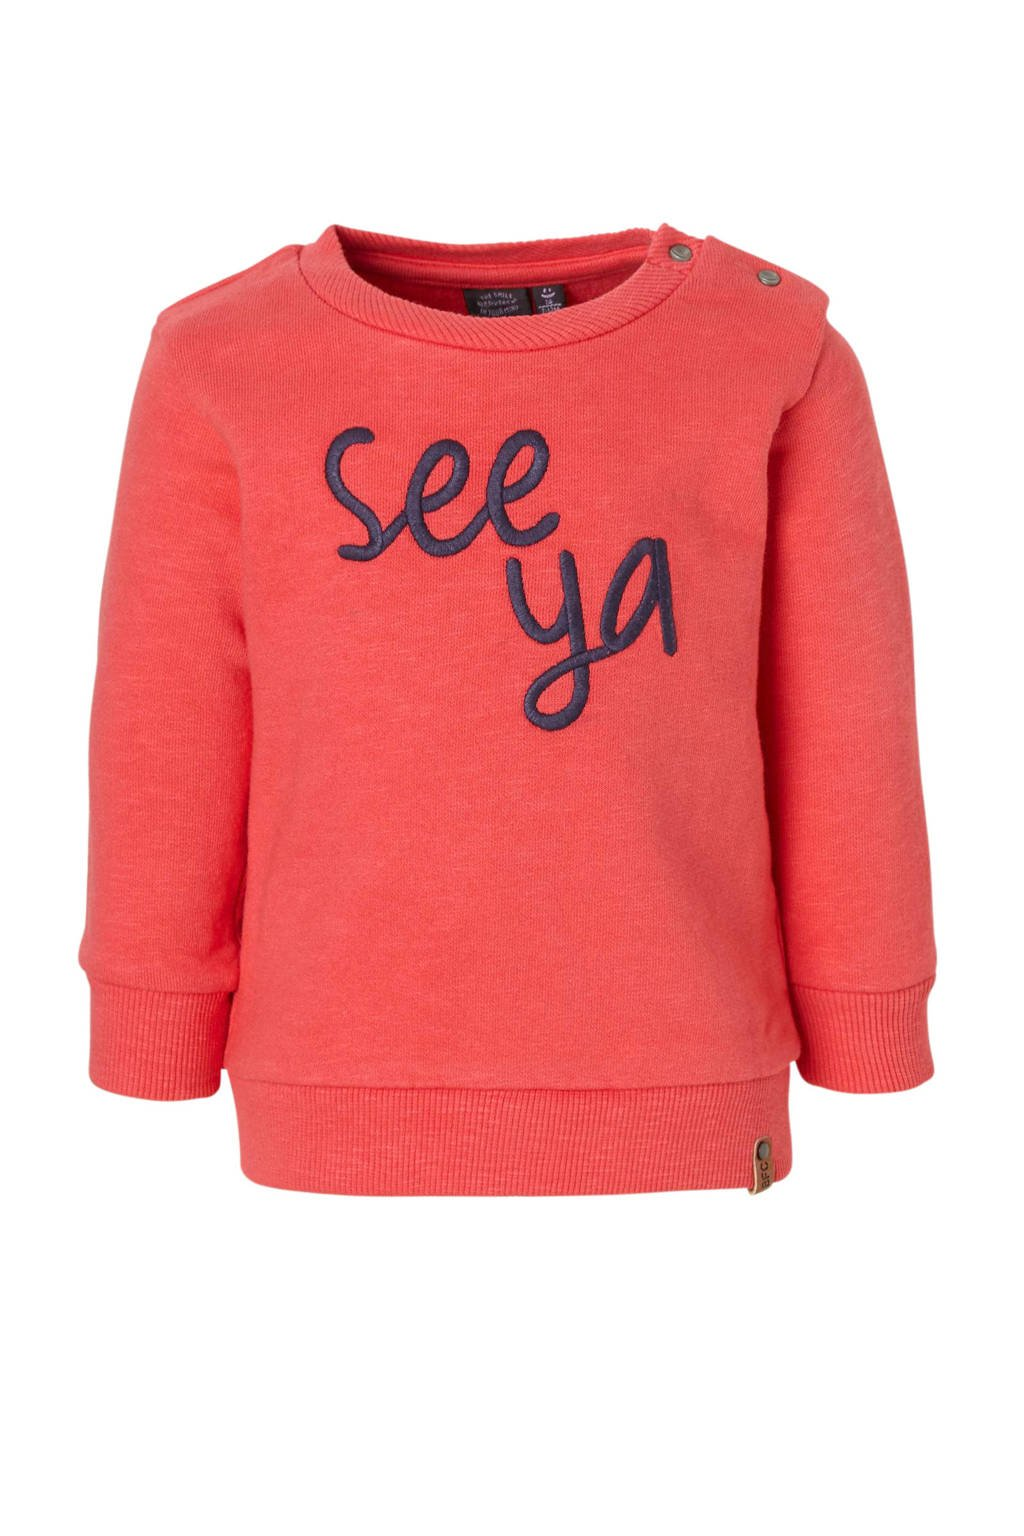 Babyface sweater met tekst oudrood, Oudrood